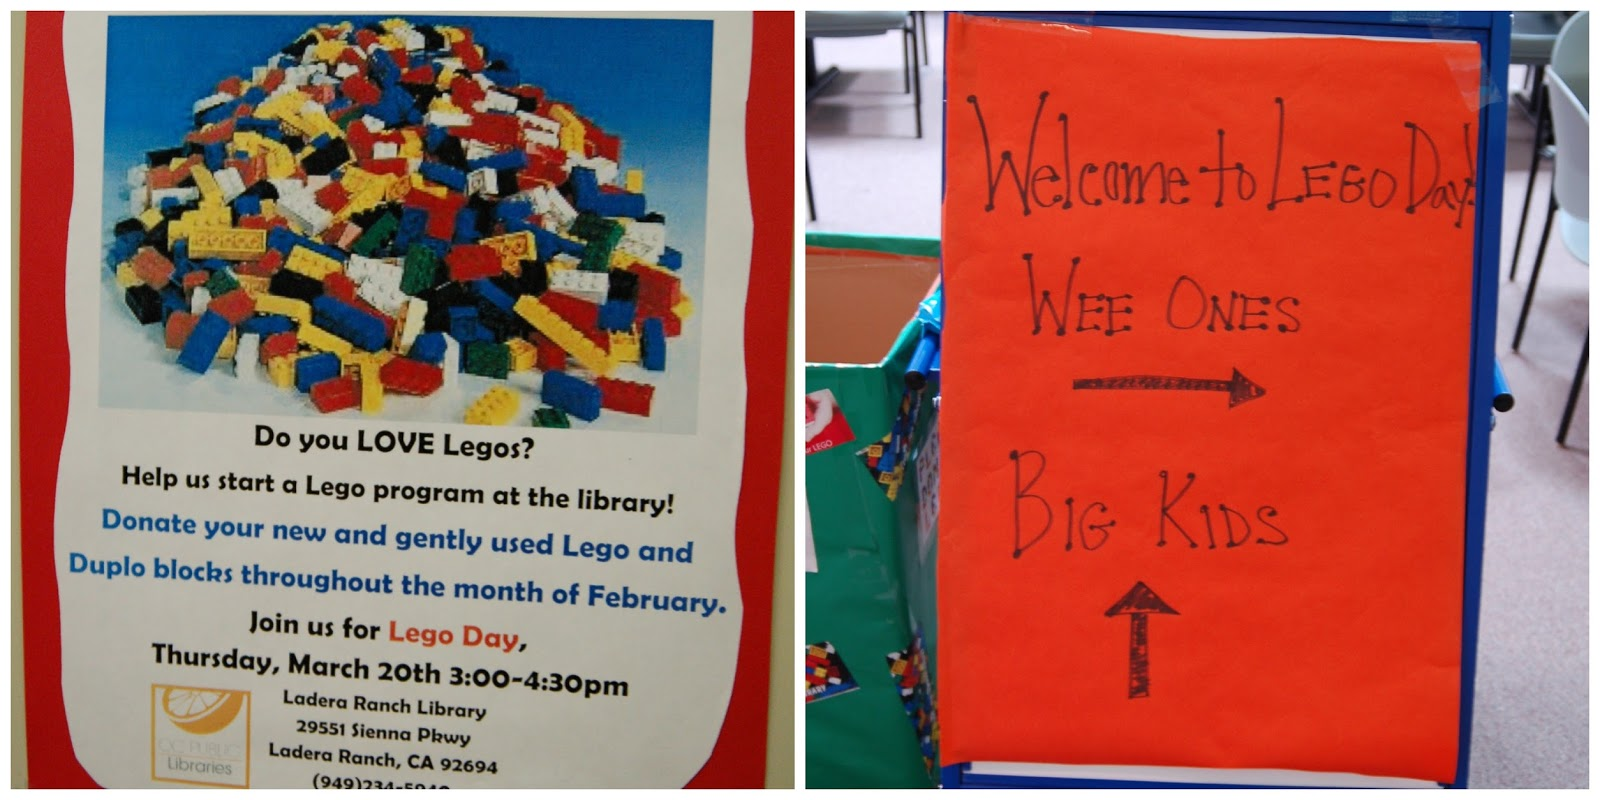 lego day at ladera ranch library